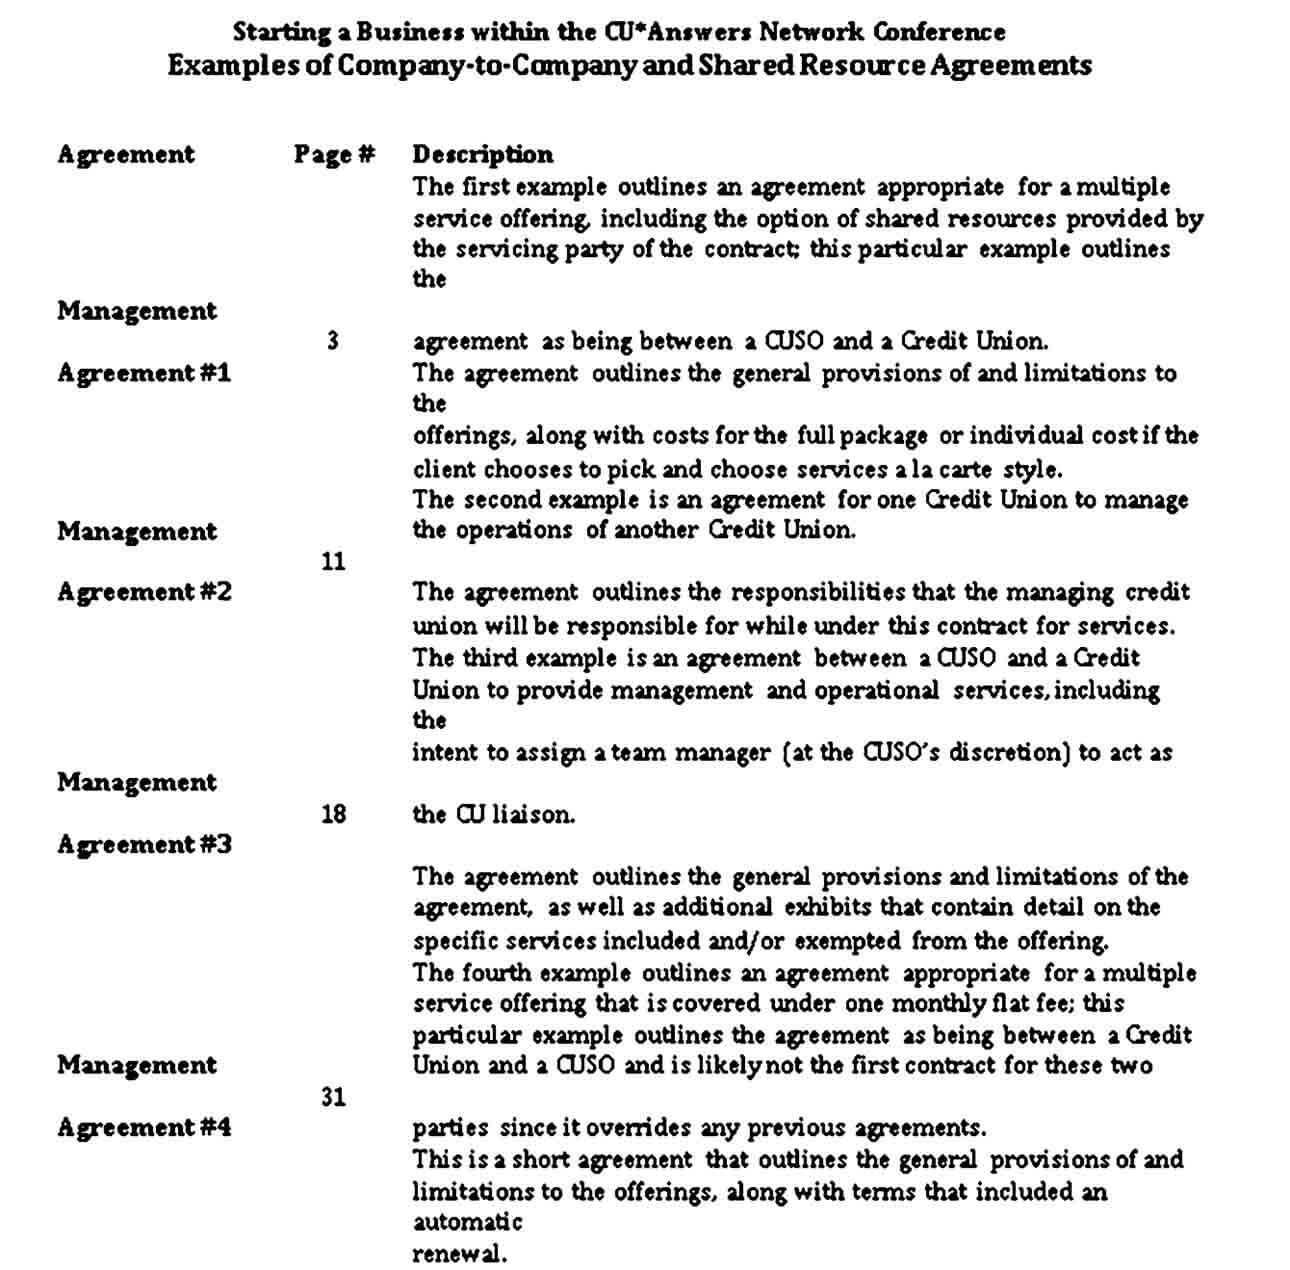 Company to Company and Shared Resource Agreements